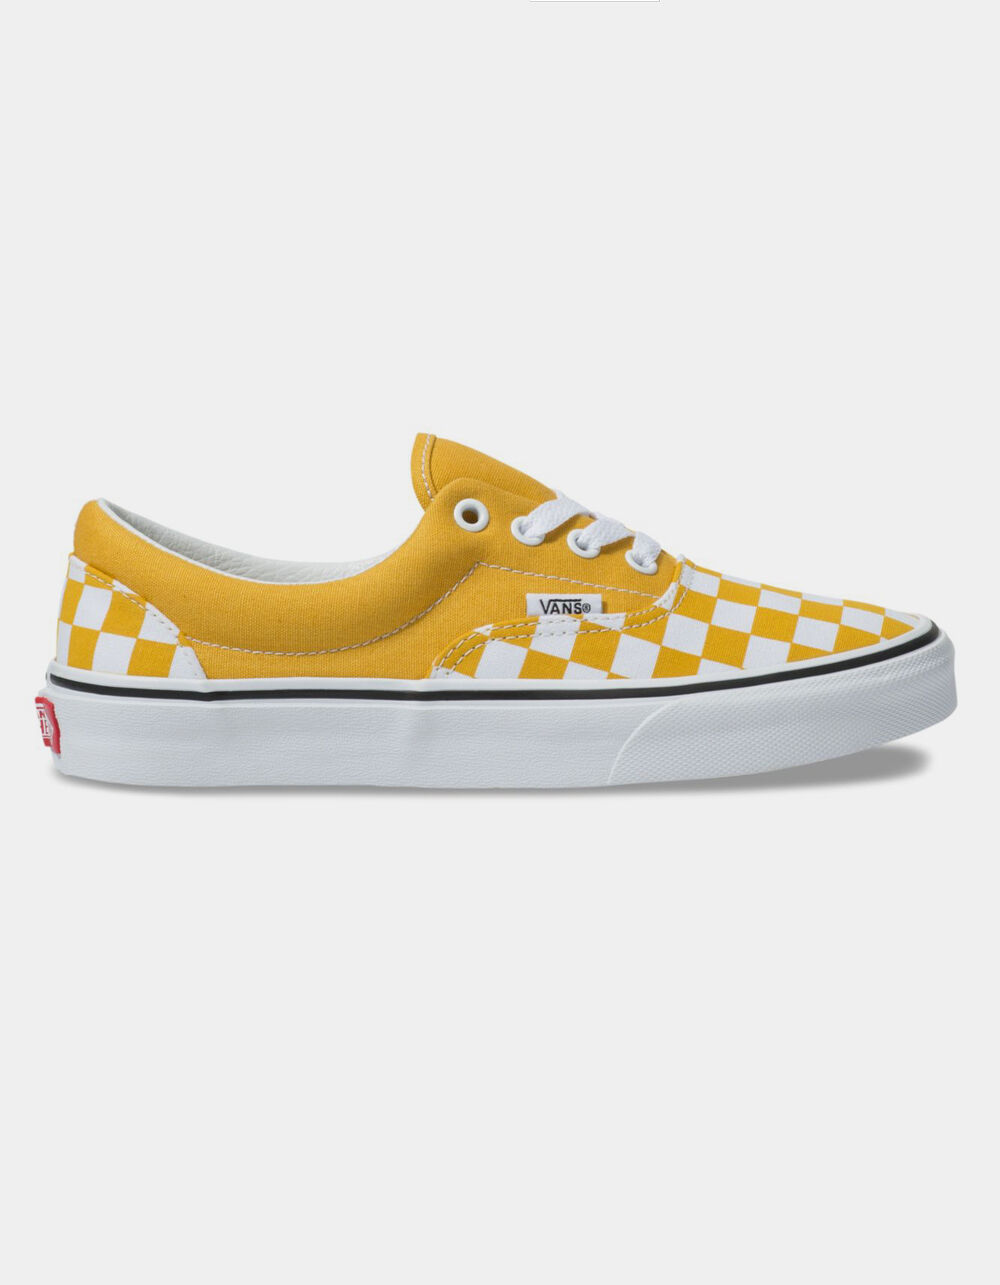 VANS Checkerboard Era Yolk Yellow Shoes